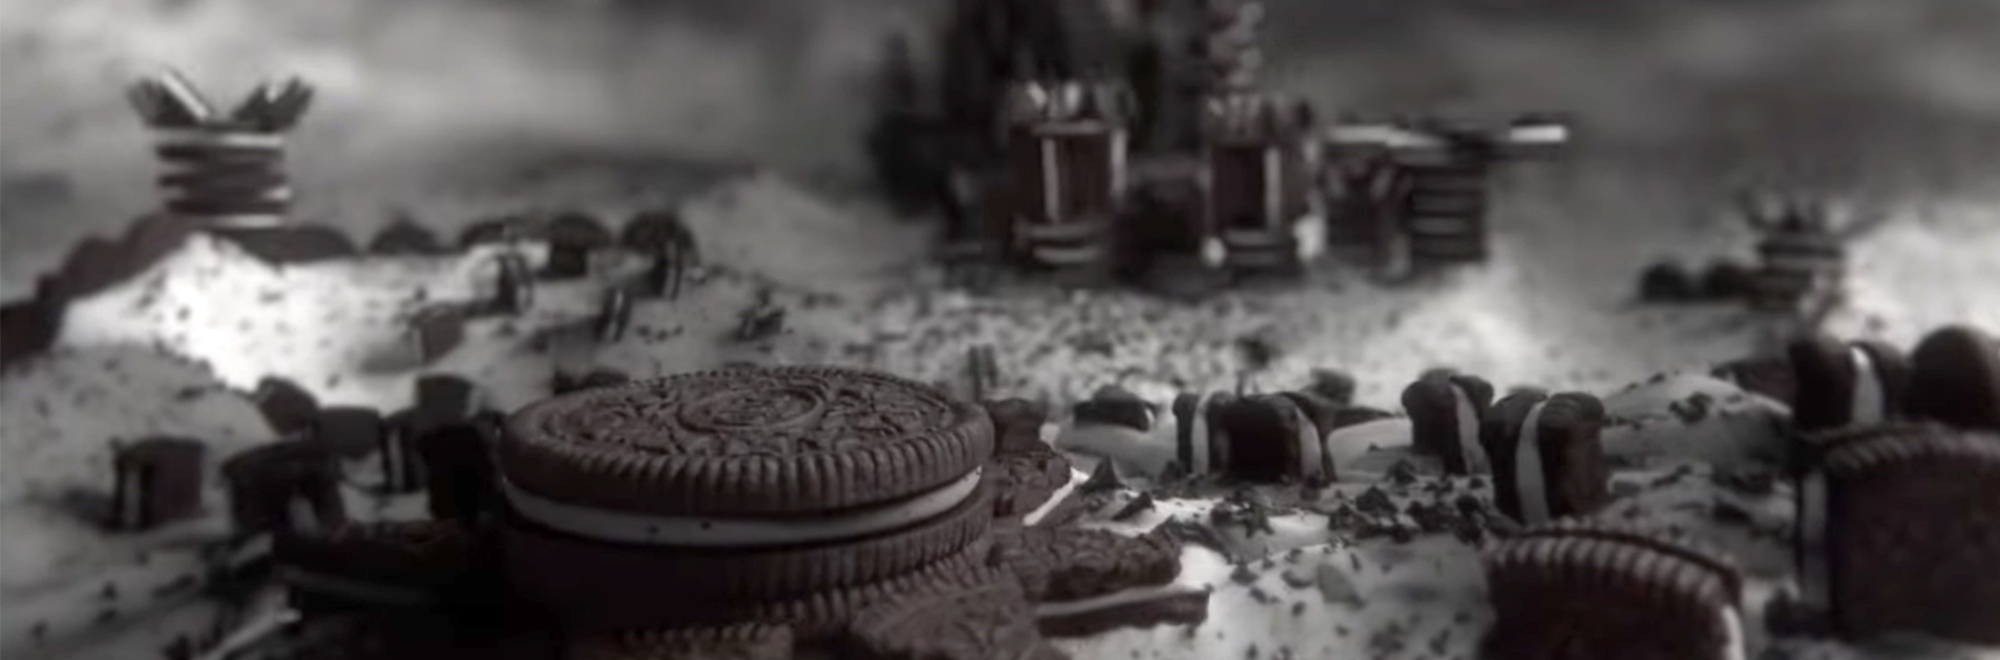 Oreo takes the biscuit with its animated film for Game of Thrones and special edition cookies